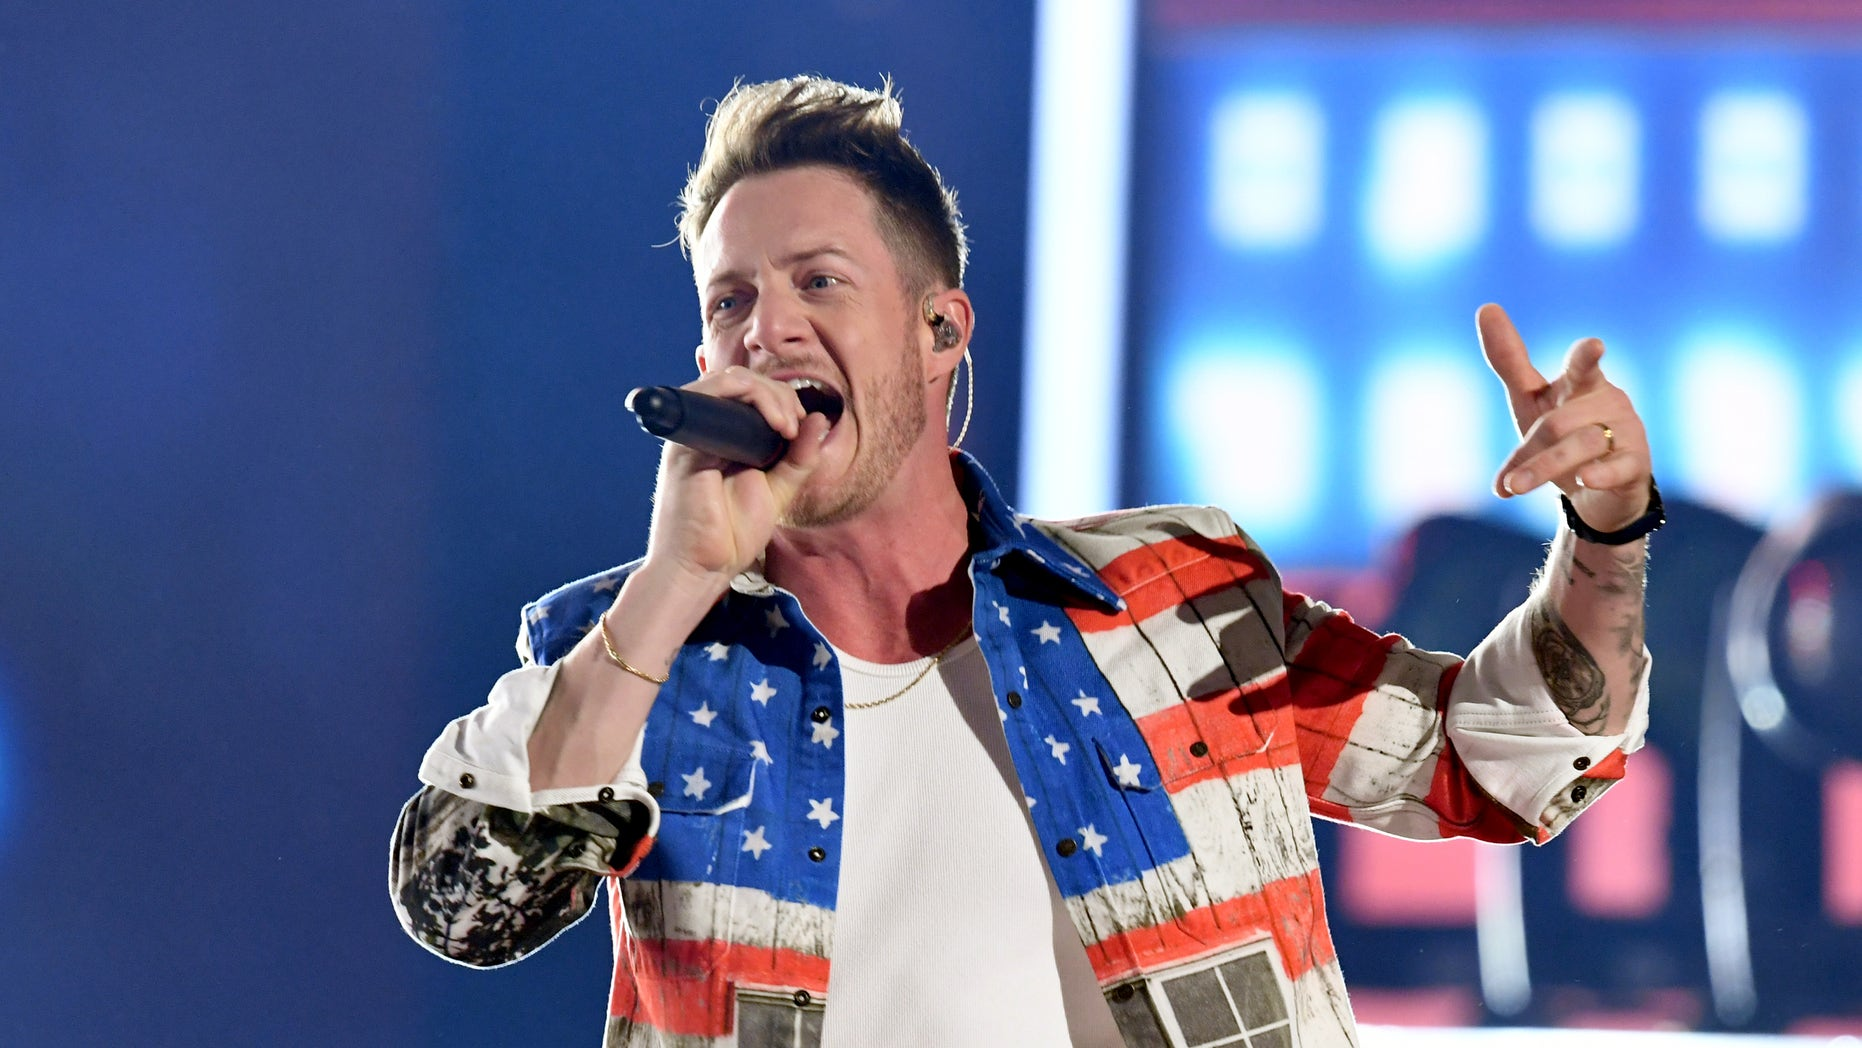 """Tyler Hubbard in Florida George Louis, wearing a jacket and jeans with the American flag, stands for the ACM 201<div class=""""e3lan e3lan-in-post1""""><script async src=""""//pagead2.googlesyndication.com/pagead/js/adsbygoogle.js""""></script> <!-- Text_Image --> <ins class=""""adsbygoogle""""      style=""""display:block""""      data-ad-client=""""ca-pub-6192903739091894""""      data-ad-slot=""""3136787391""""      data-ad-format=""""auto""""      data-full-width-responsive=""""true""""></ins> <script> (adsbygoogle = window.adsbygoogle 